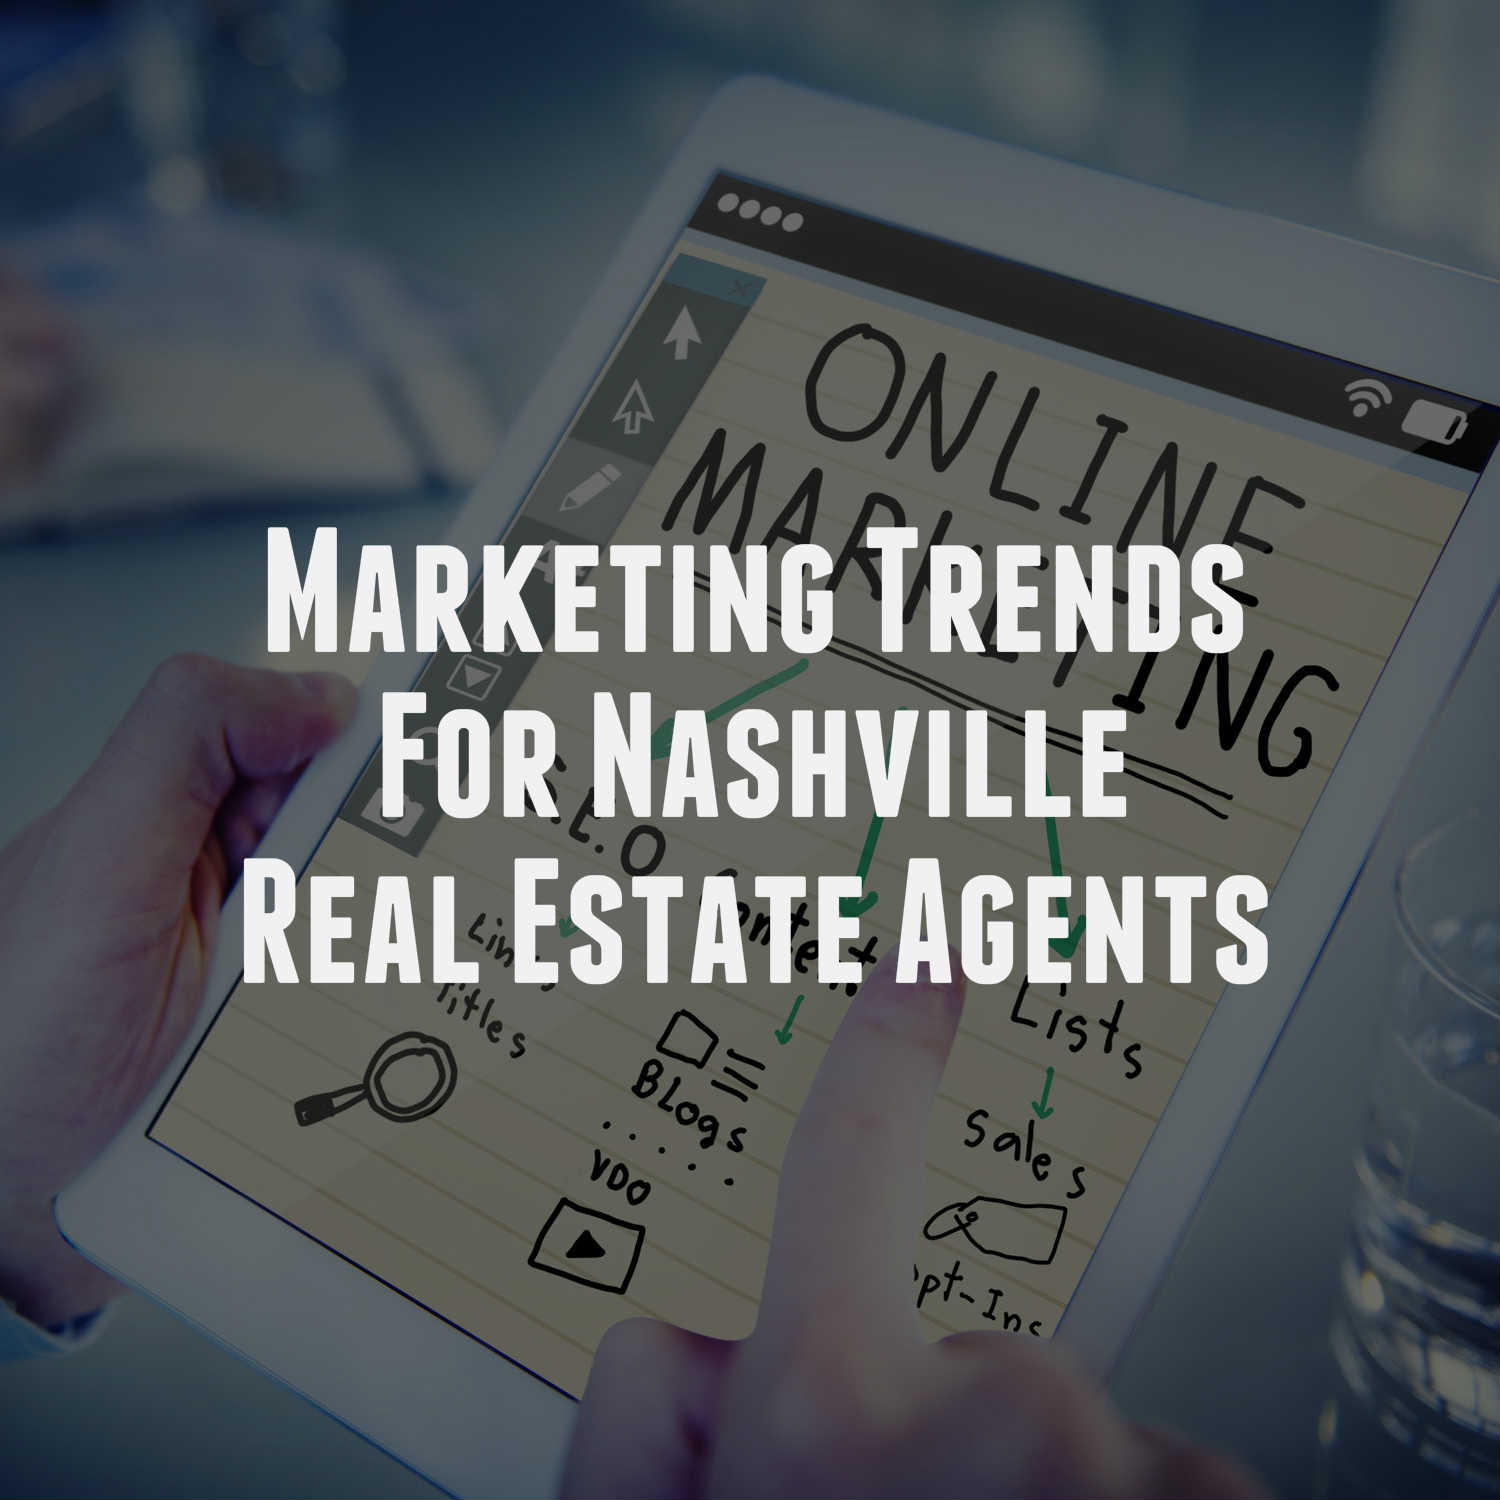 Marketing Trends For Nashville Real Estate Agents 2019